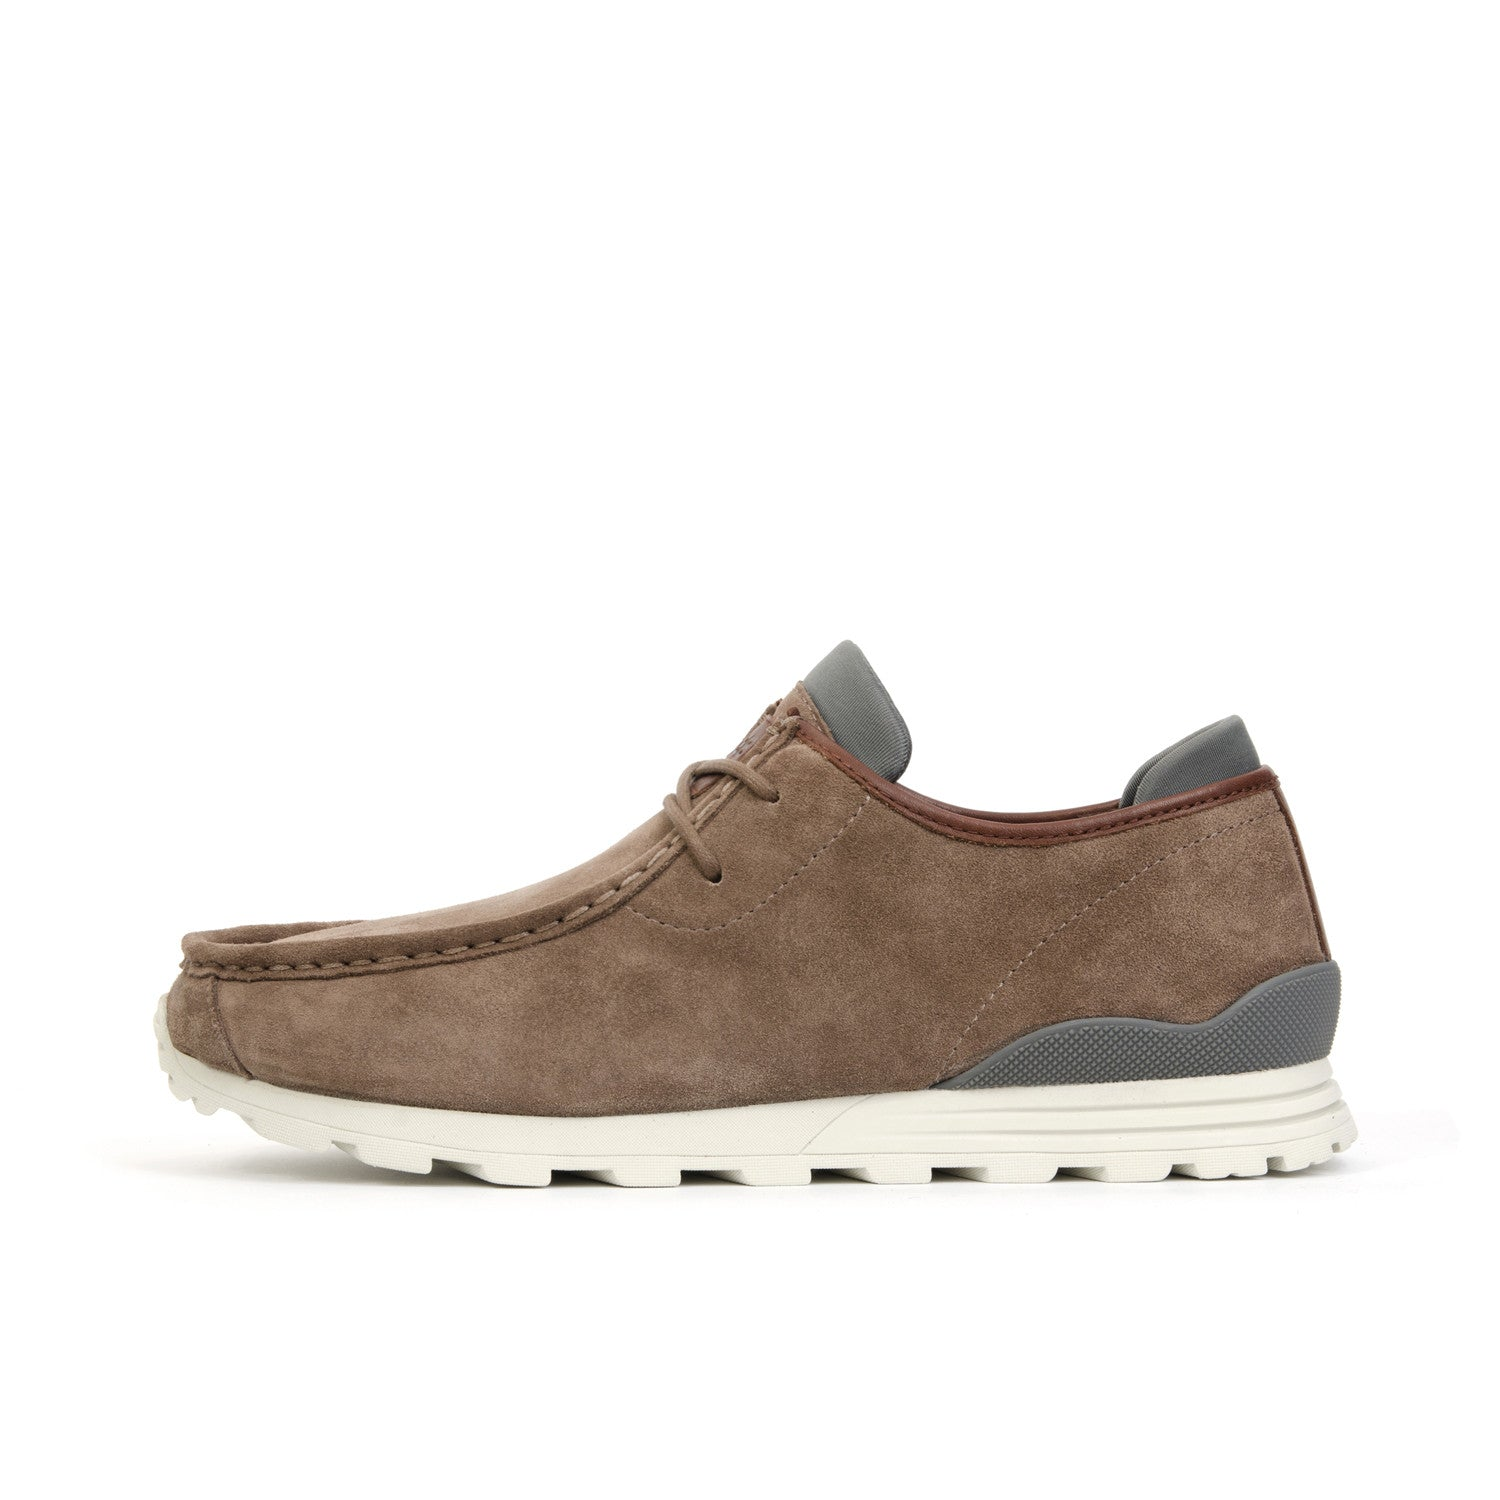 Clae Hopper Redwood Suede - Concrete